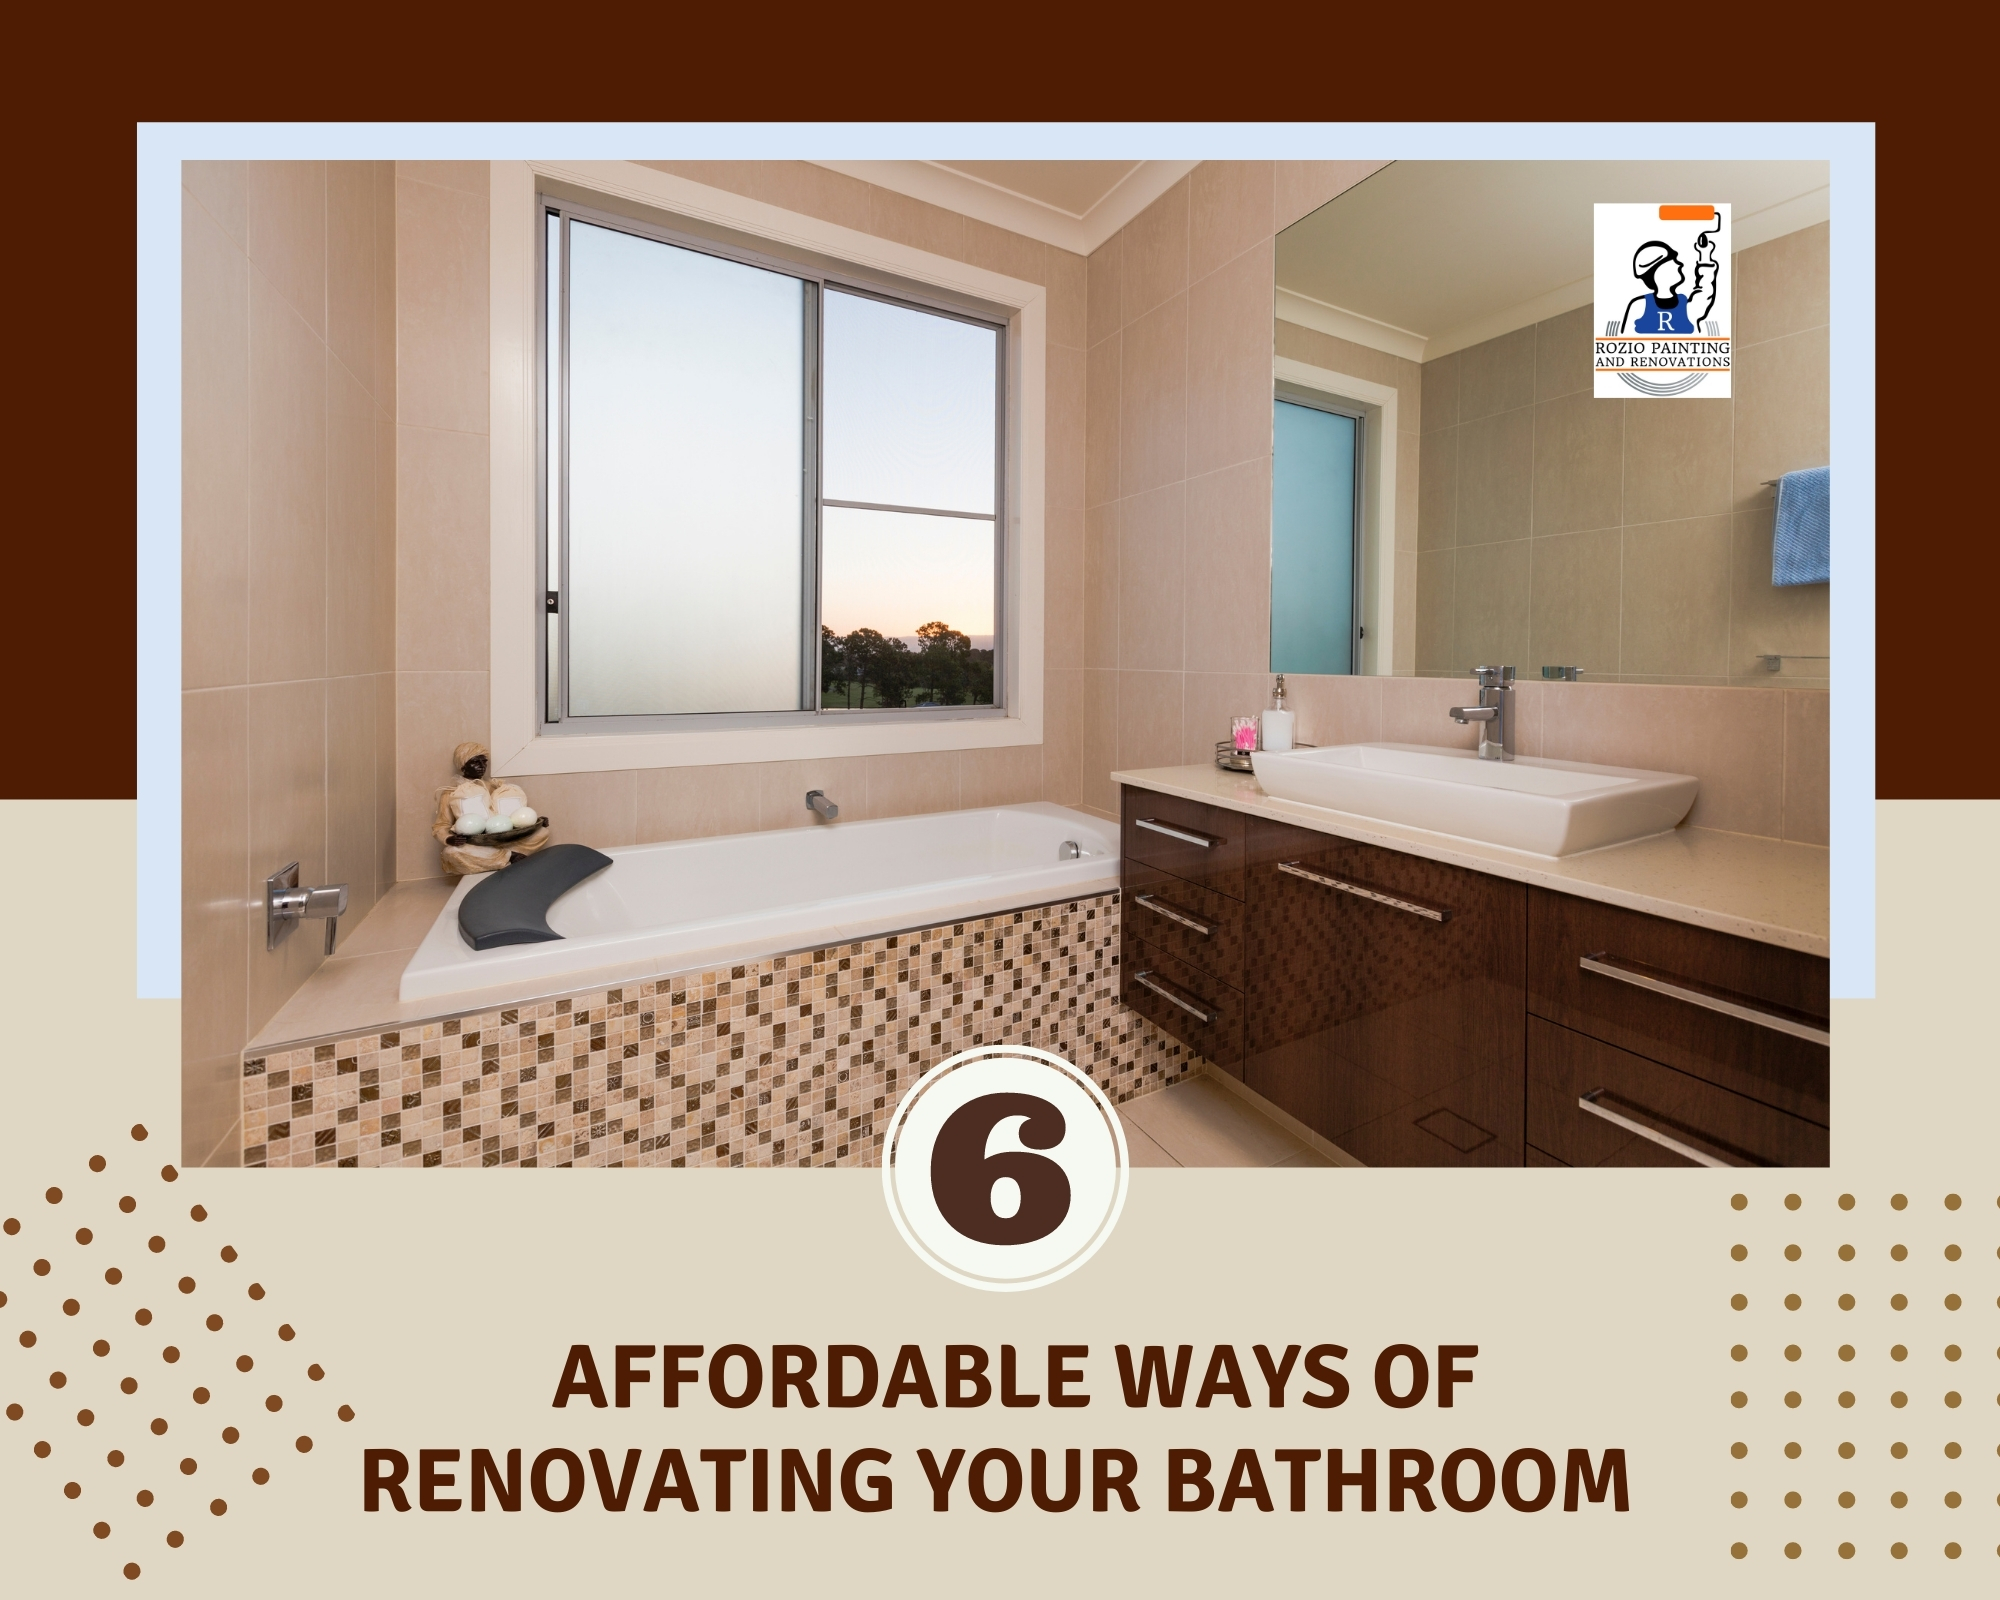 6 Afforable Ways of Renovating your Bathroom